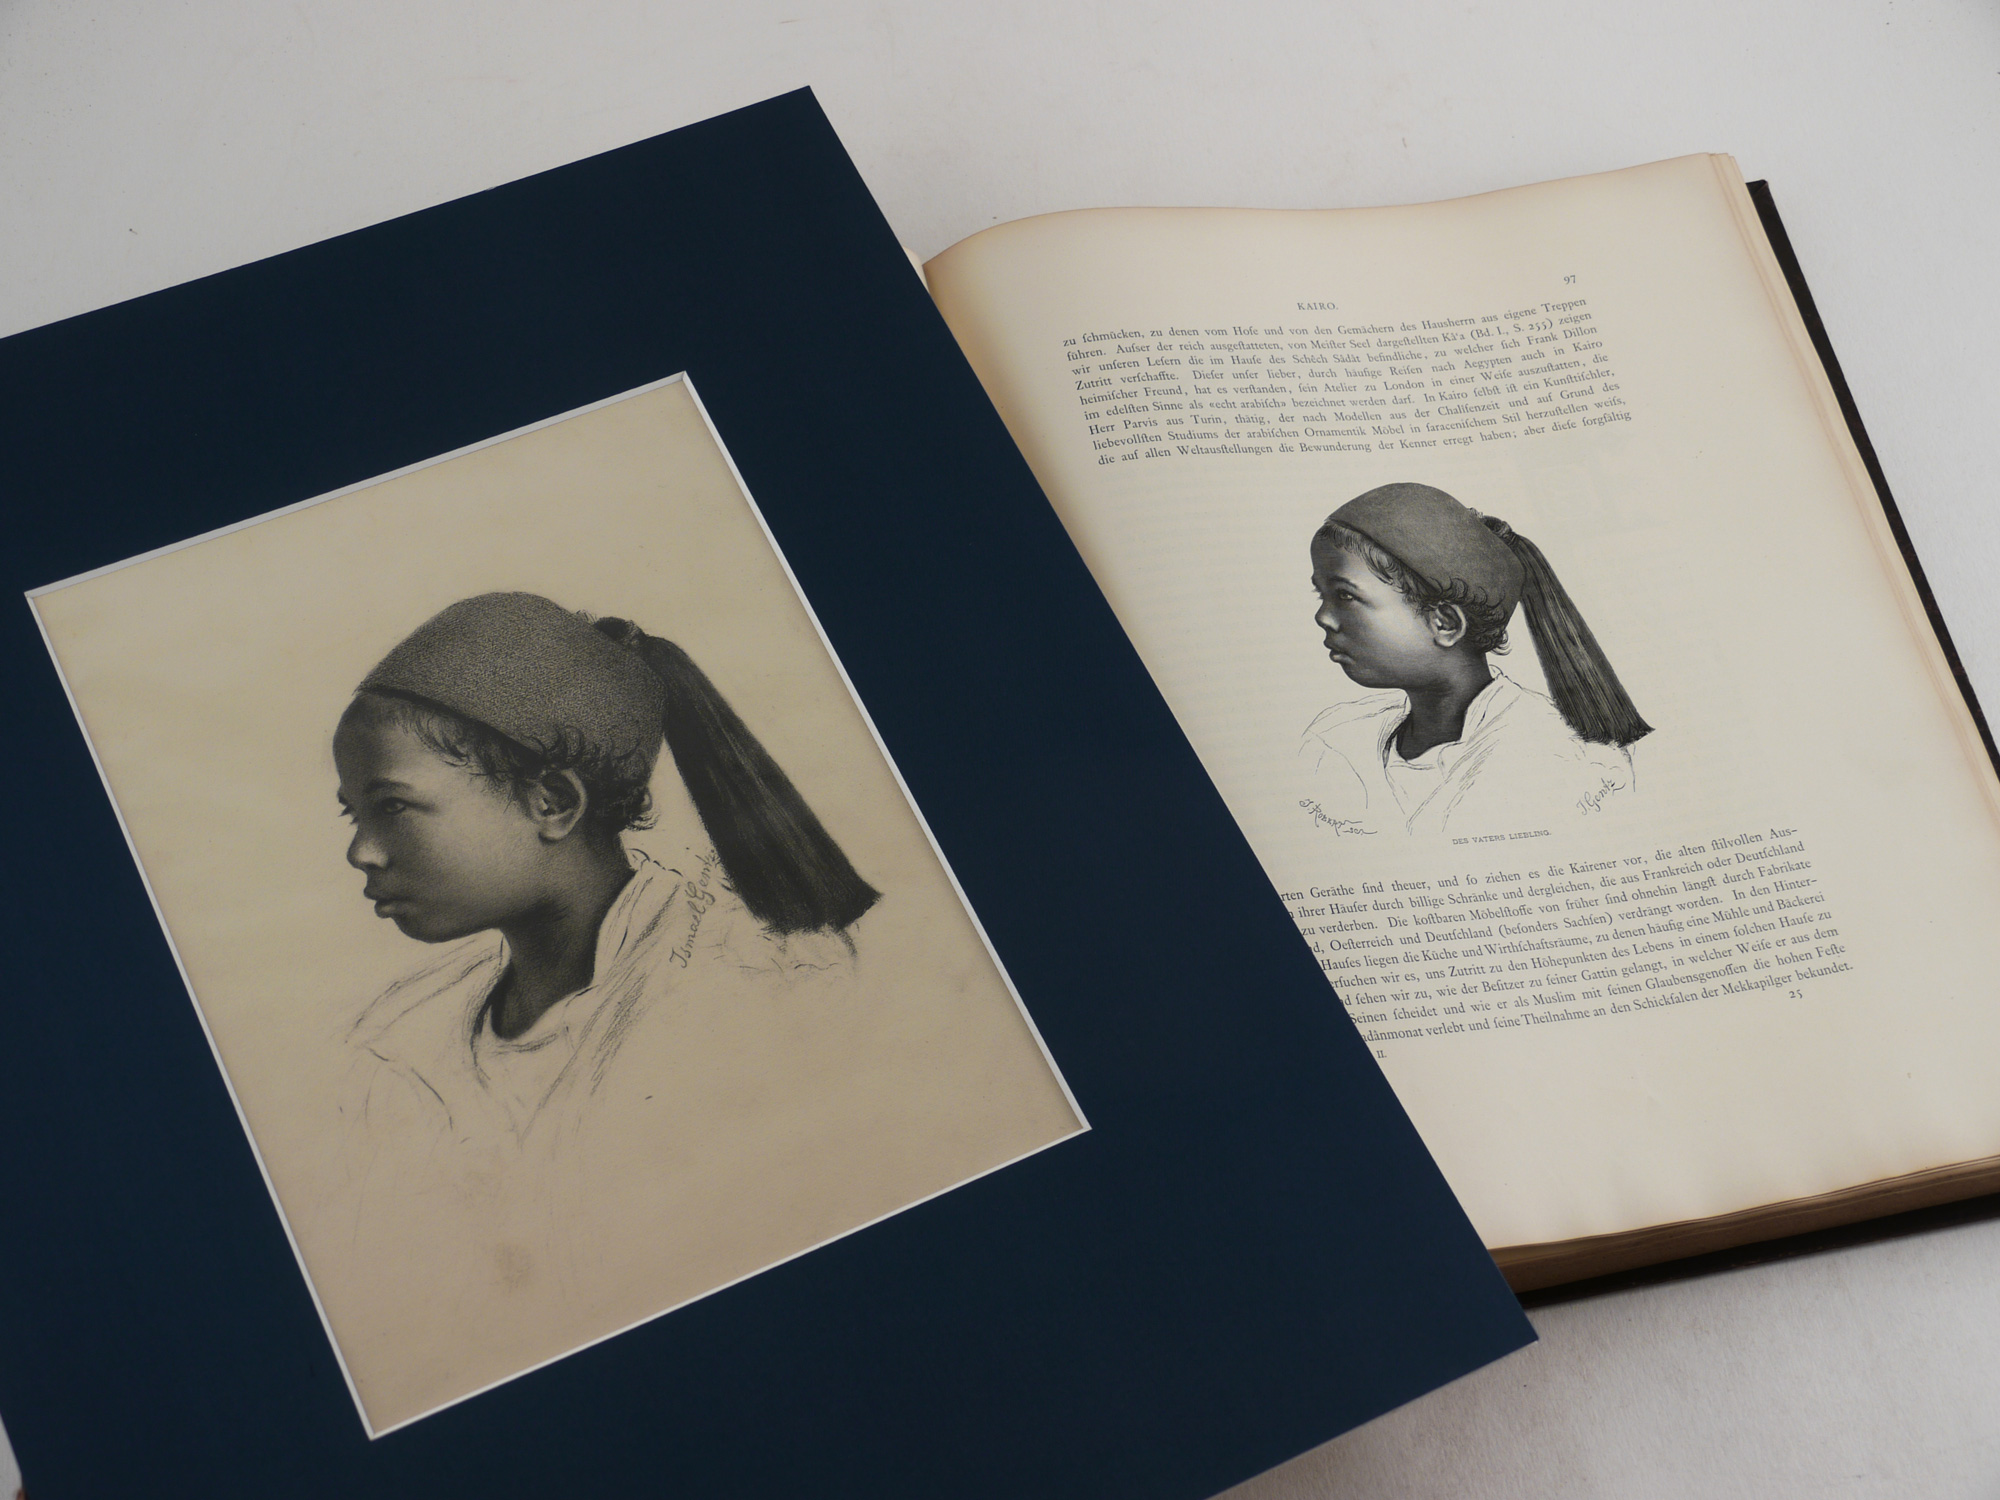 Was Ist Ein Bd Collection Of Nine Original Drawings By Wilhelm And Ismael Gentz Leopold Mueller And Charles Welsch Used As Prototypes For Illustrations In Georg